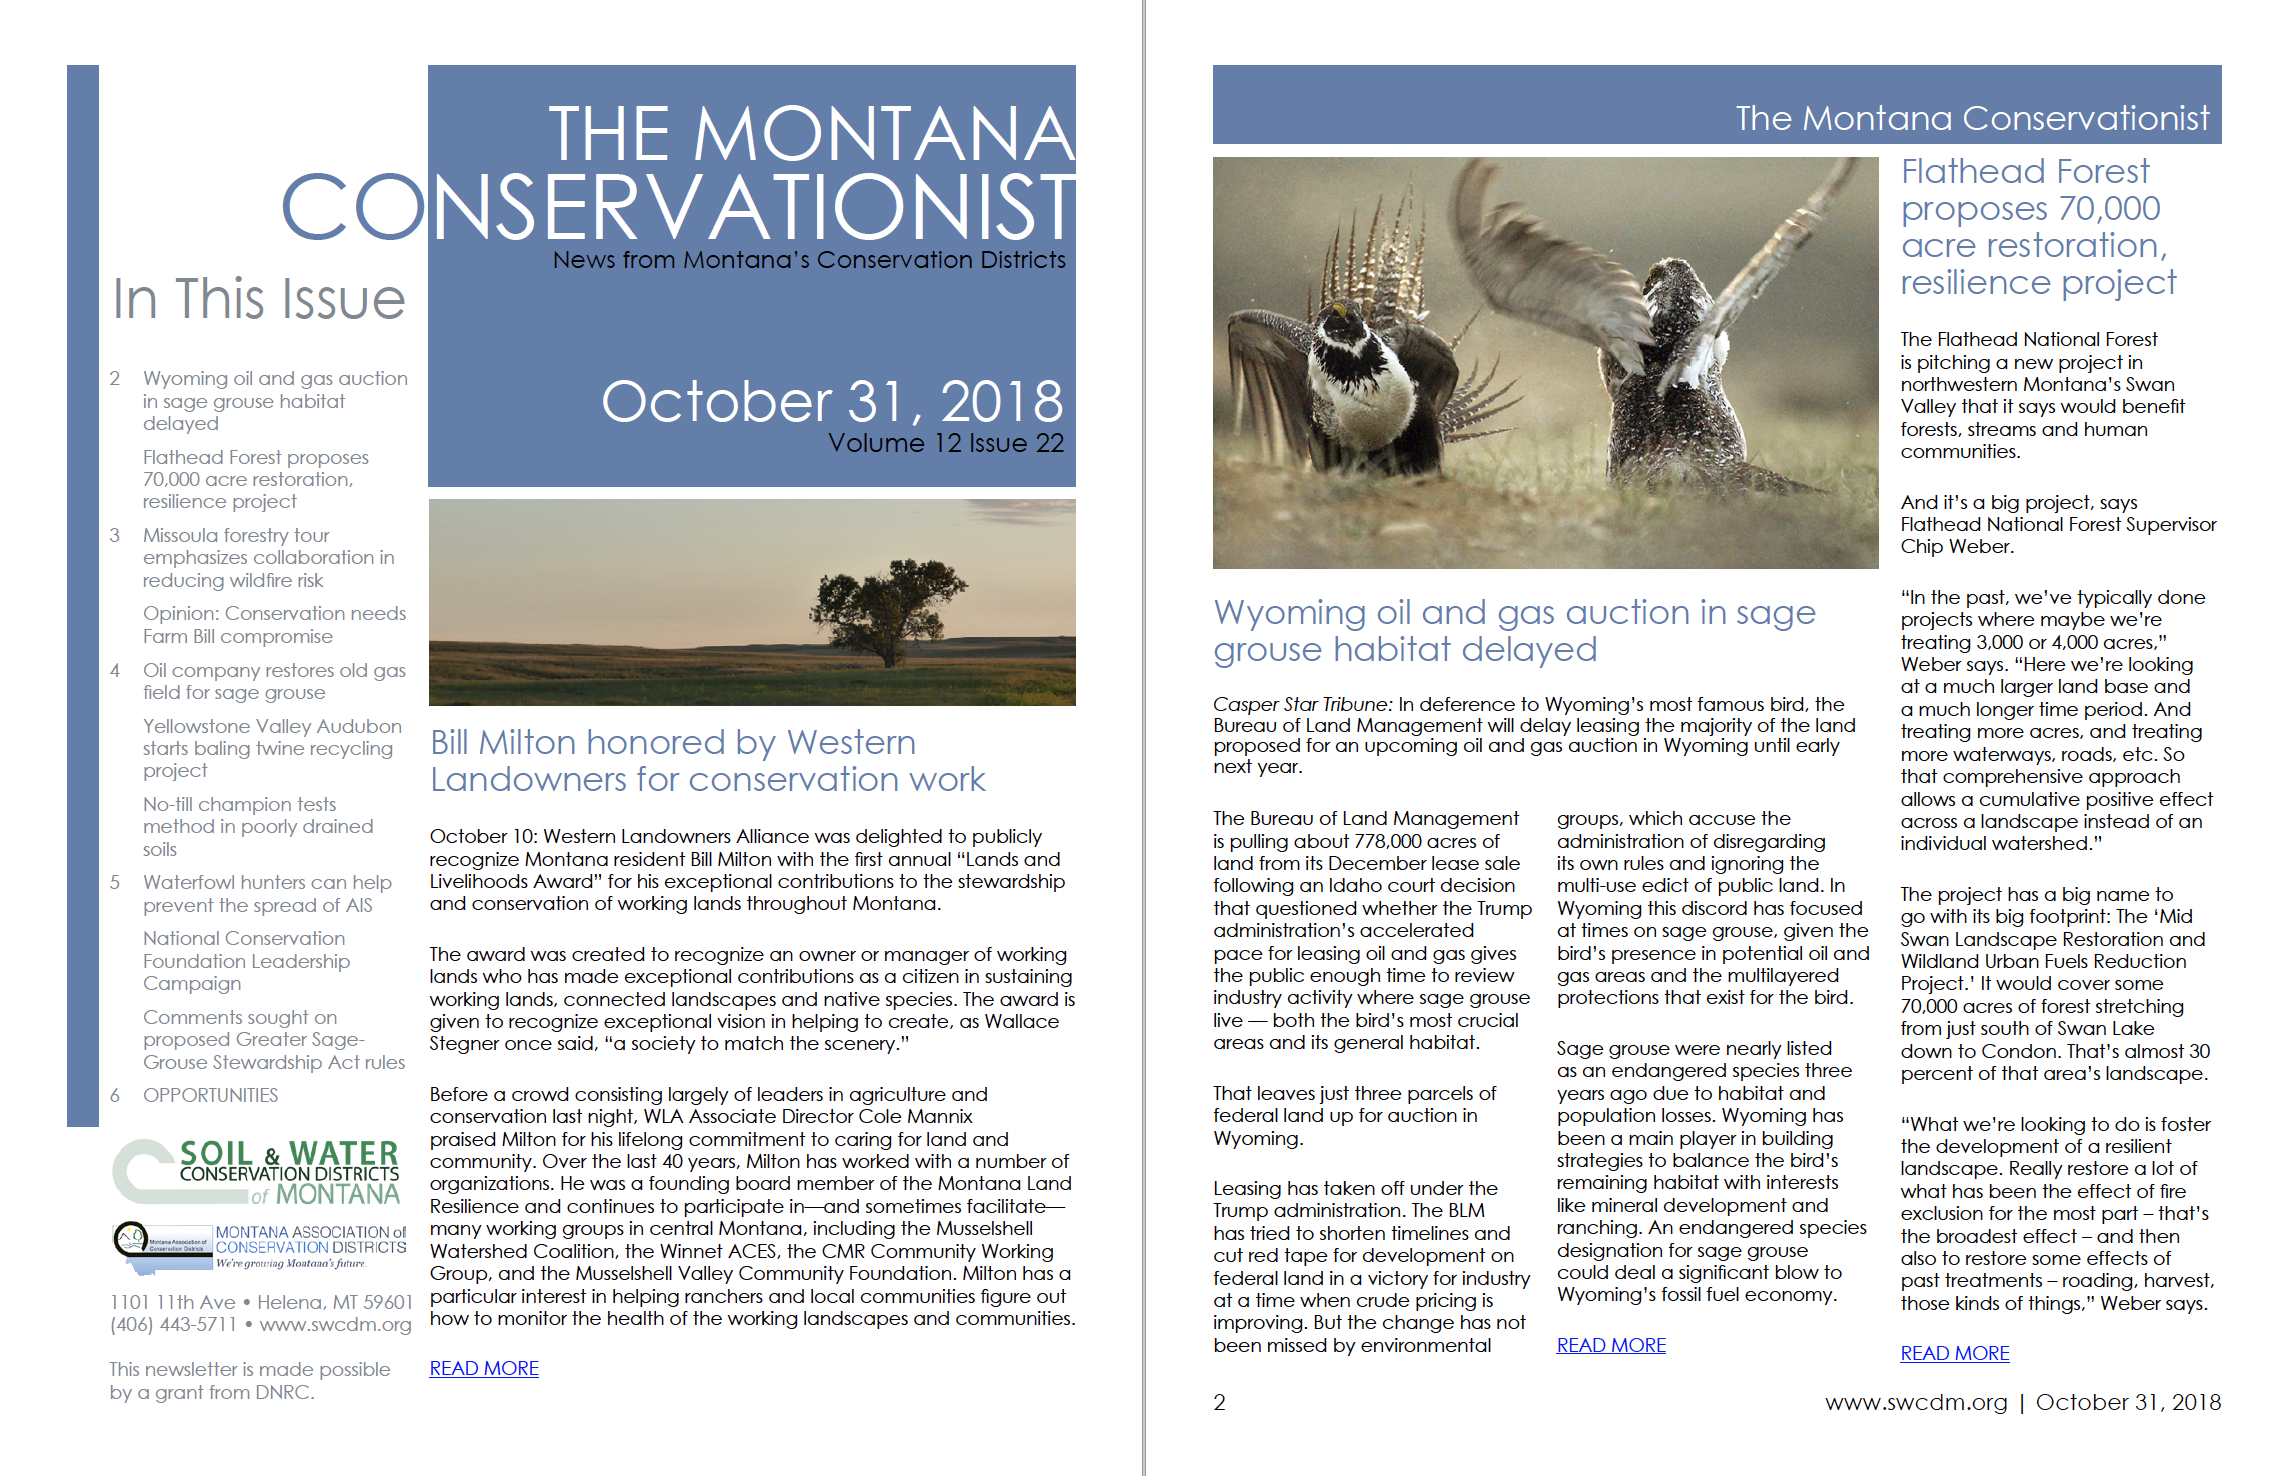 The Montana Conservationist October 31